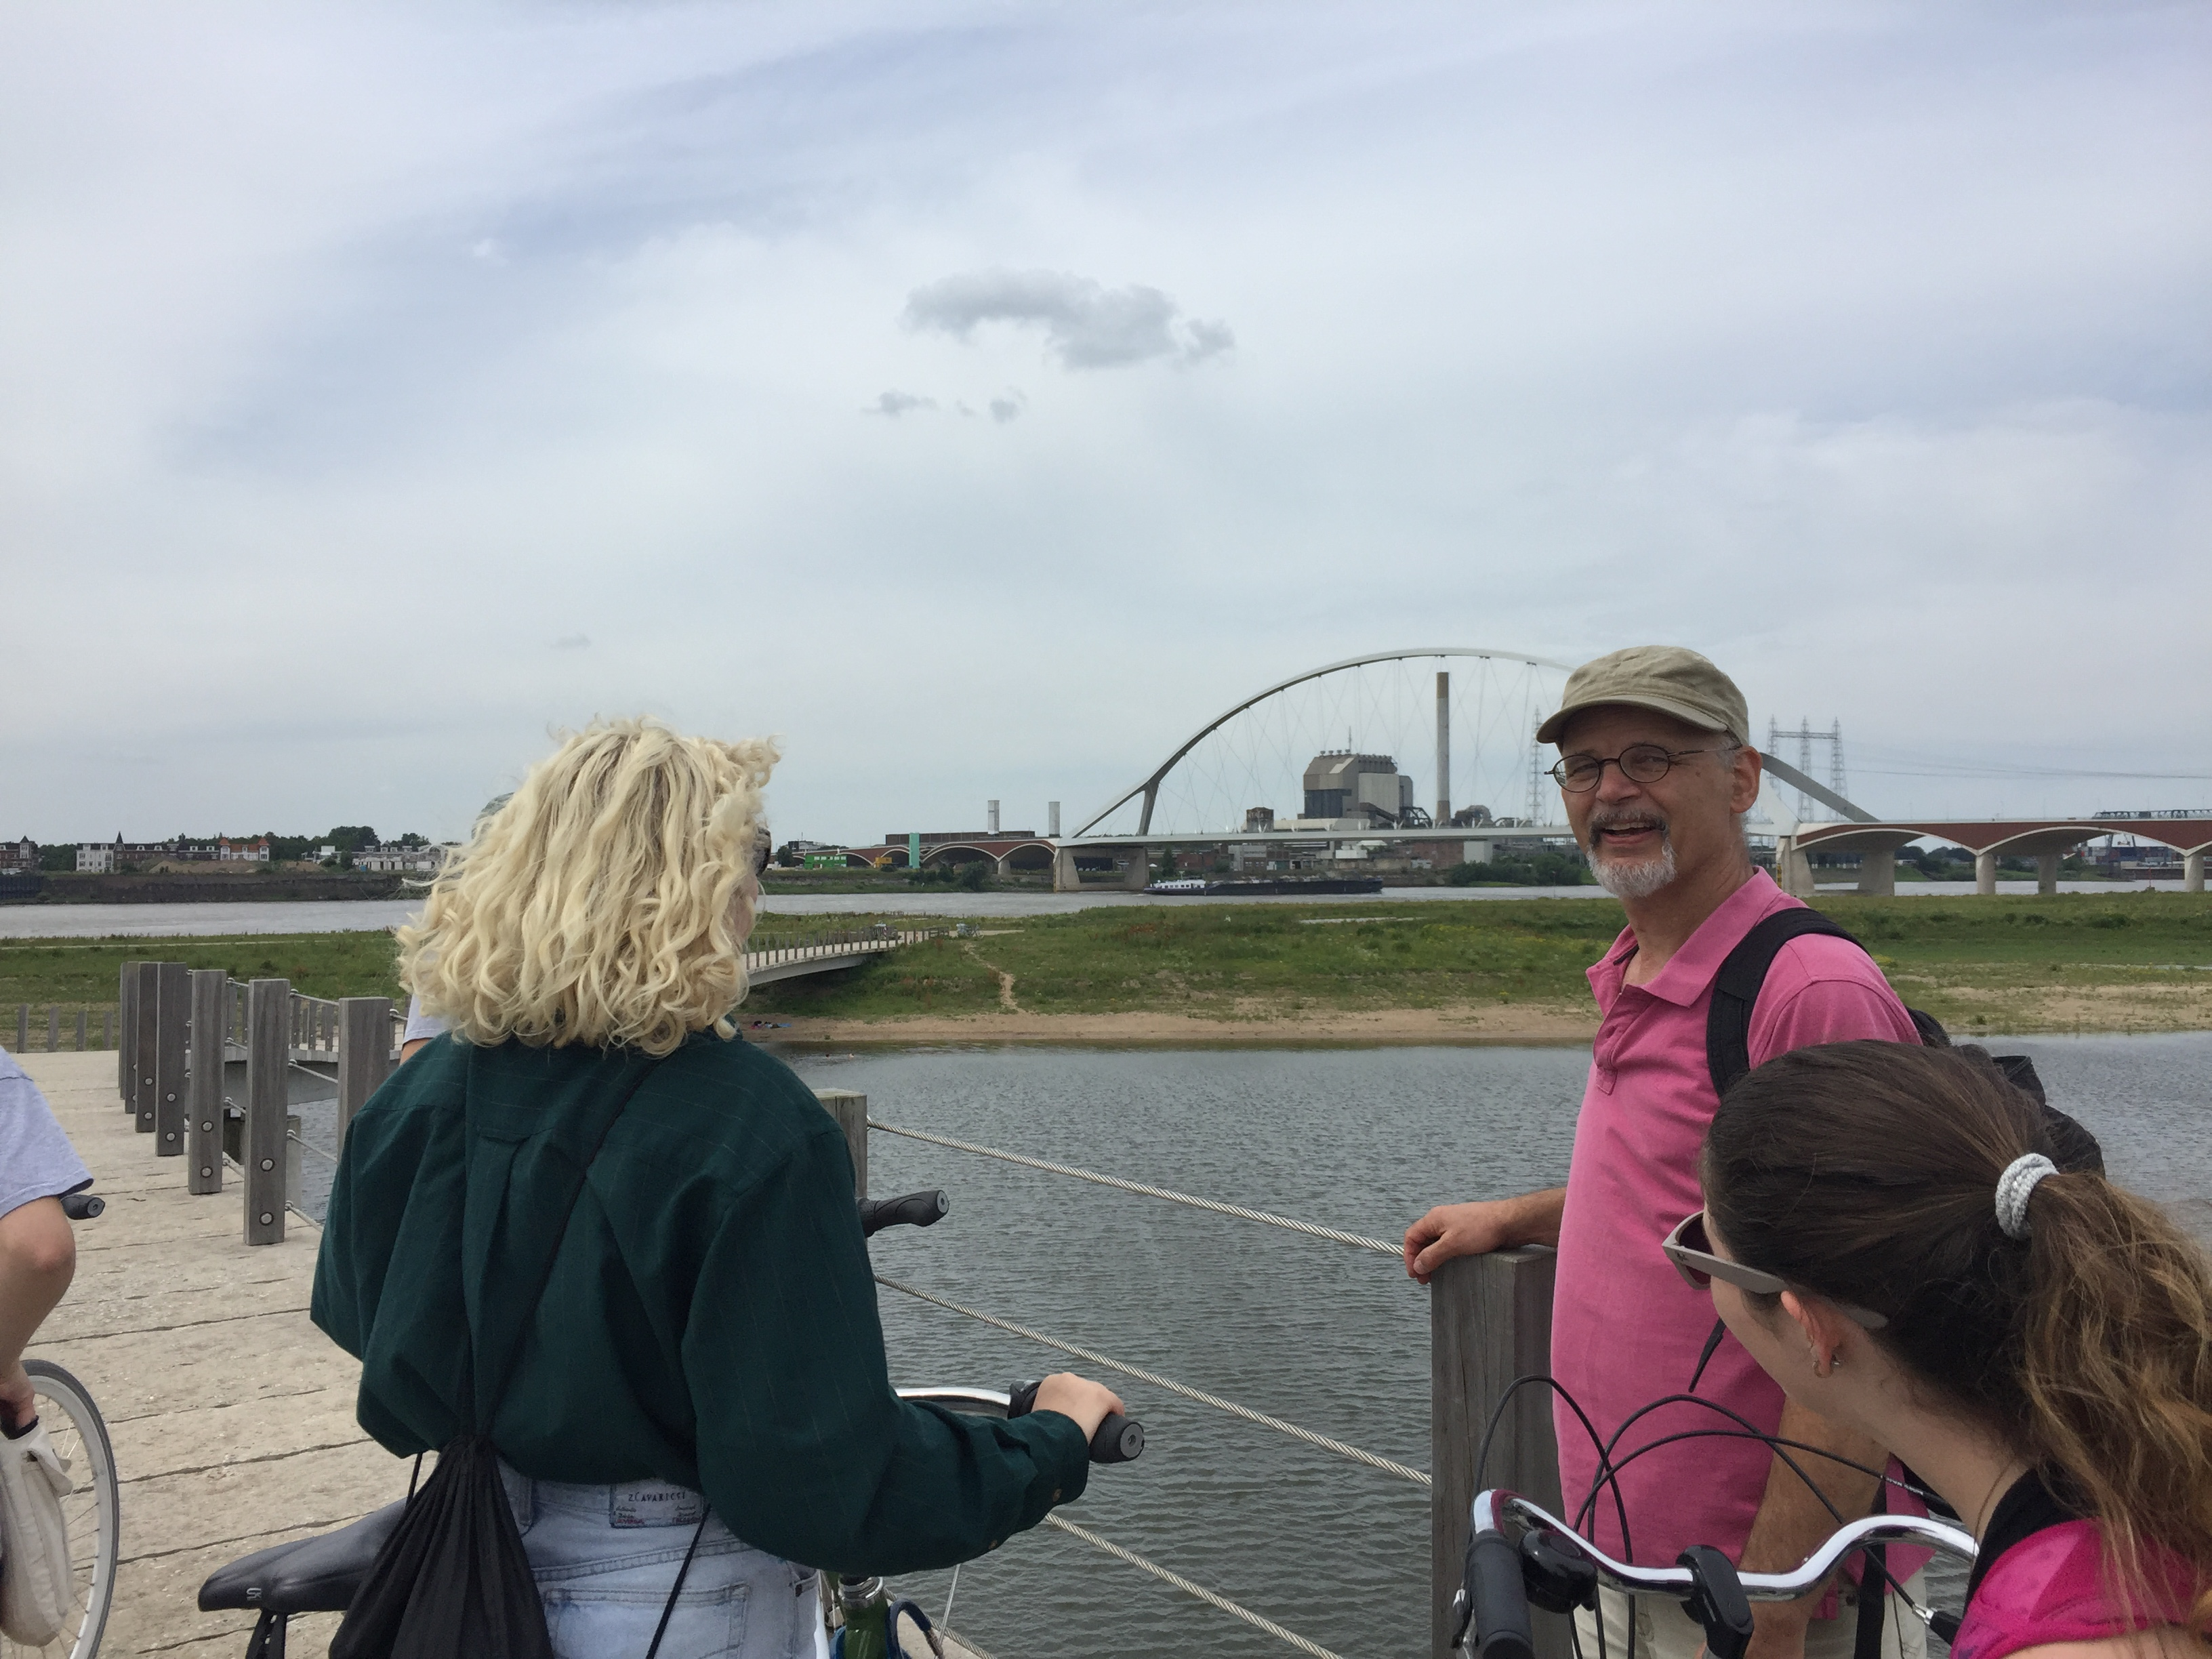 Professor Simon Richter on the banks of the Waal in Nijmegen